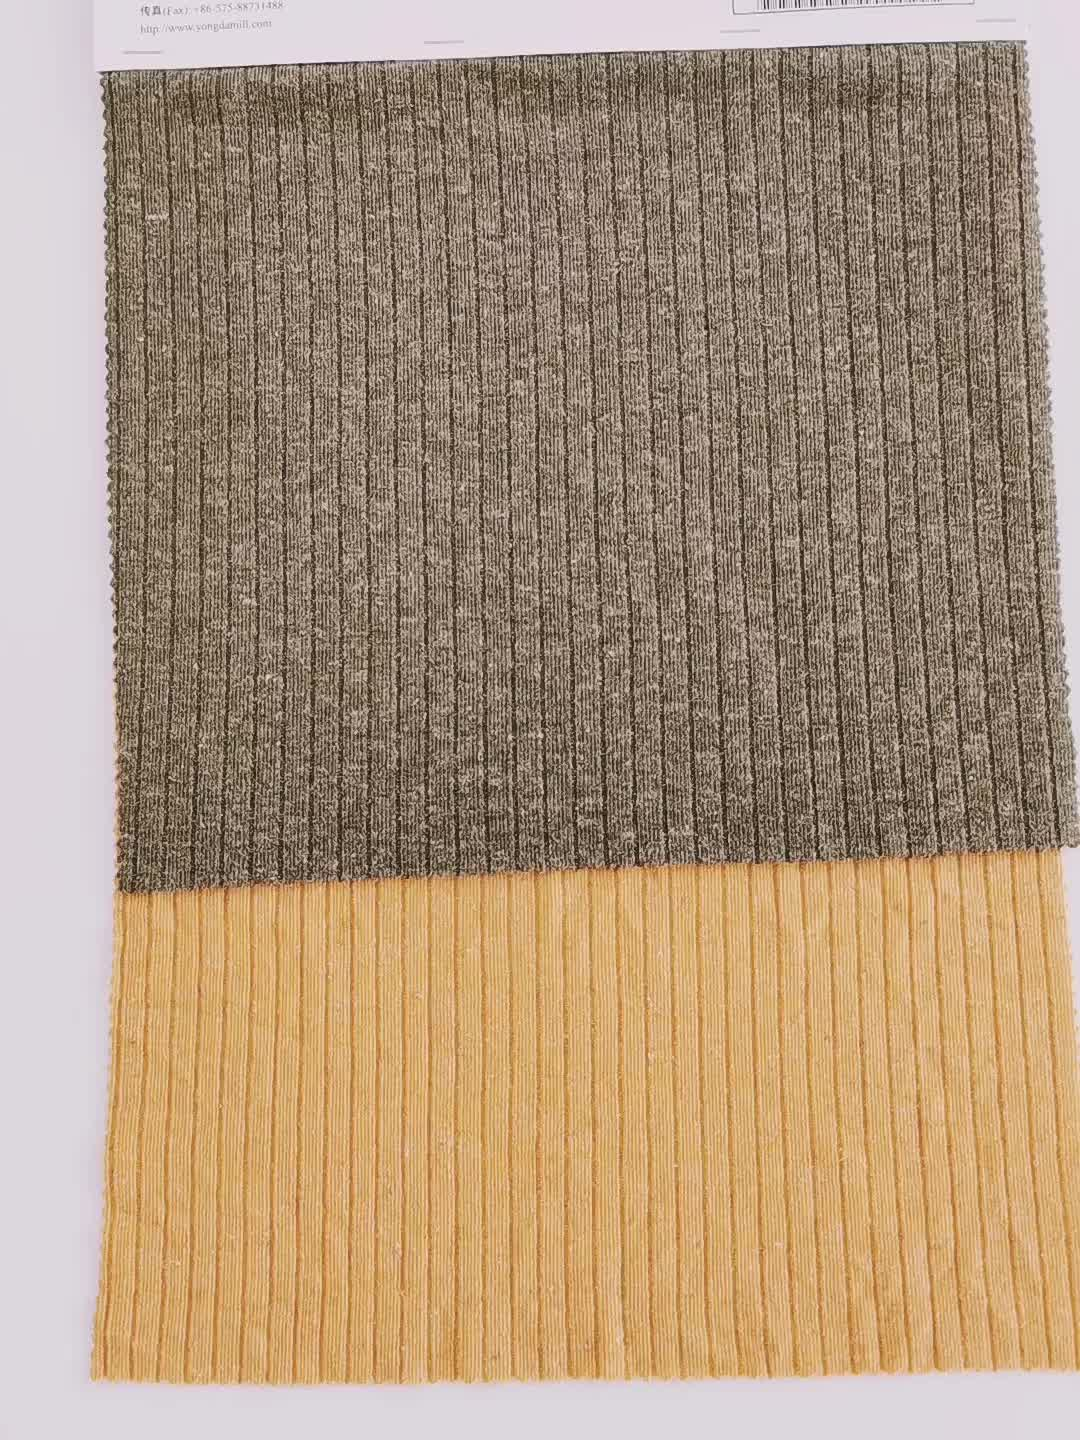 Wholesale crepe multicolor polyester knit rib stretch double yarn fabric